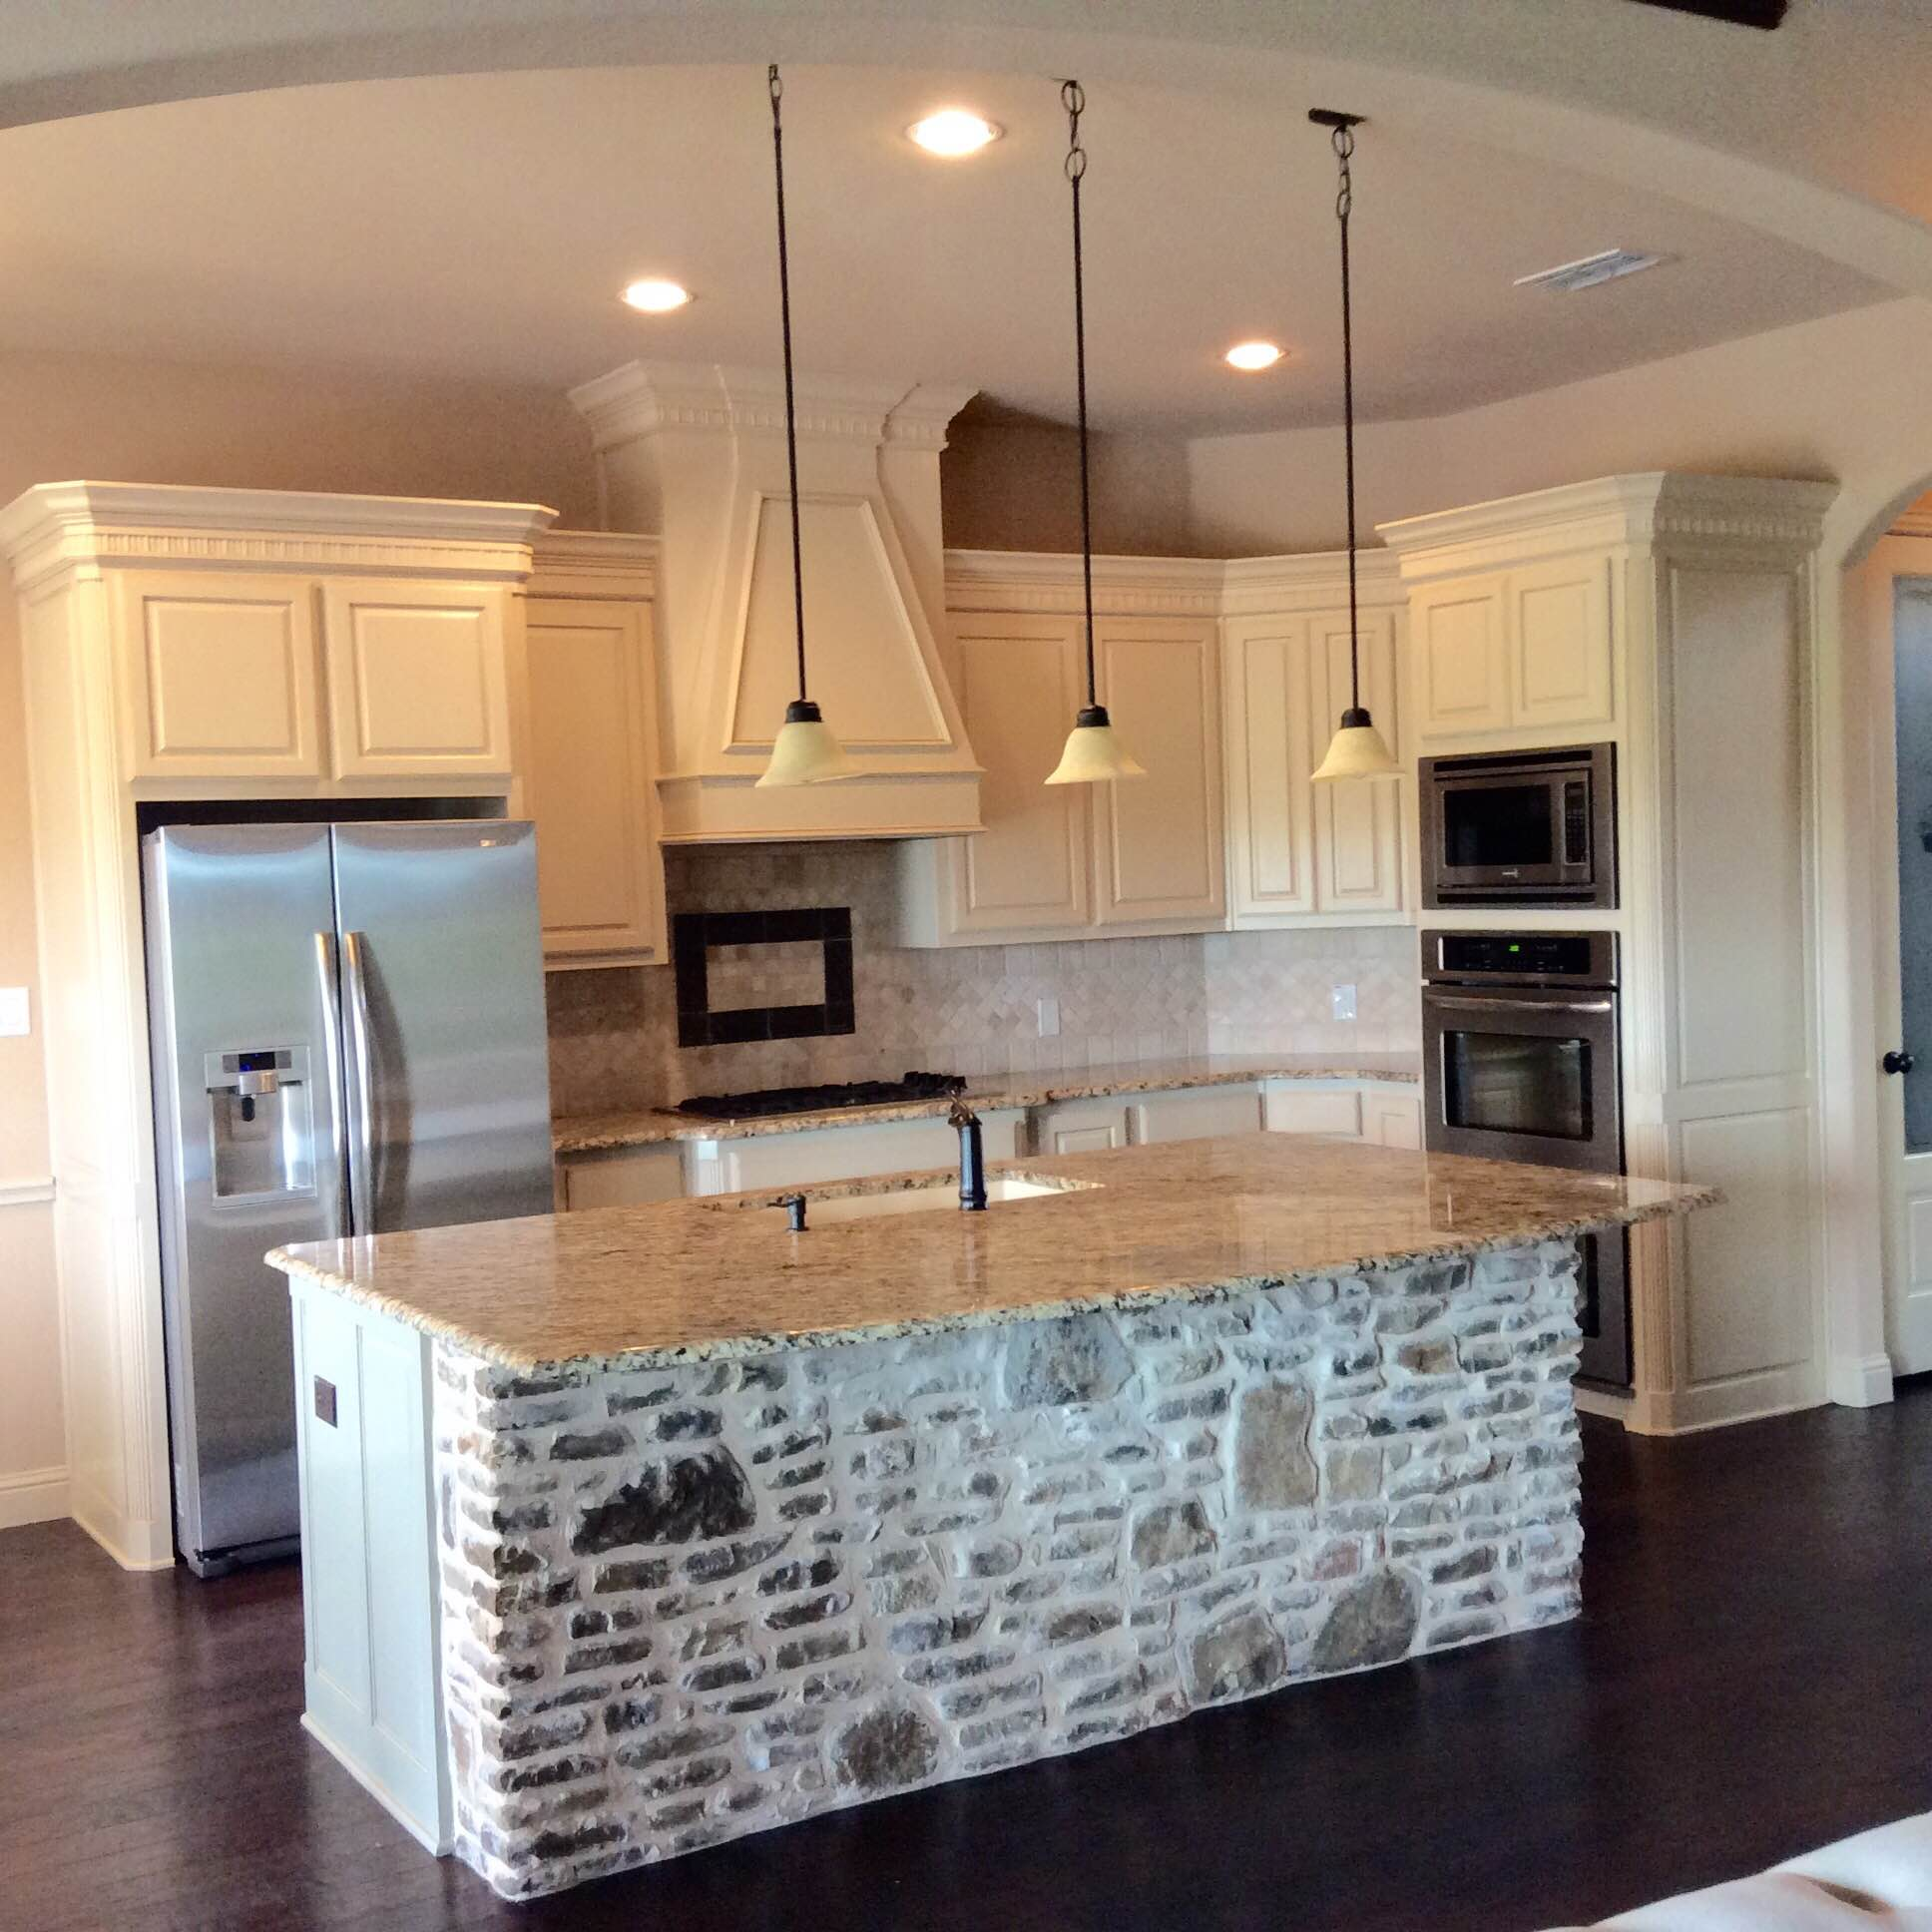 Kitchen cabinets dallas fort worth - Cabinet Refinish Hardy S Painting Dallas Fort Worth